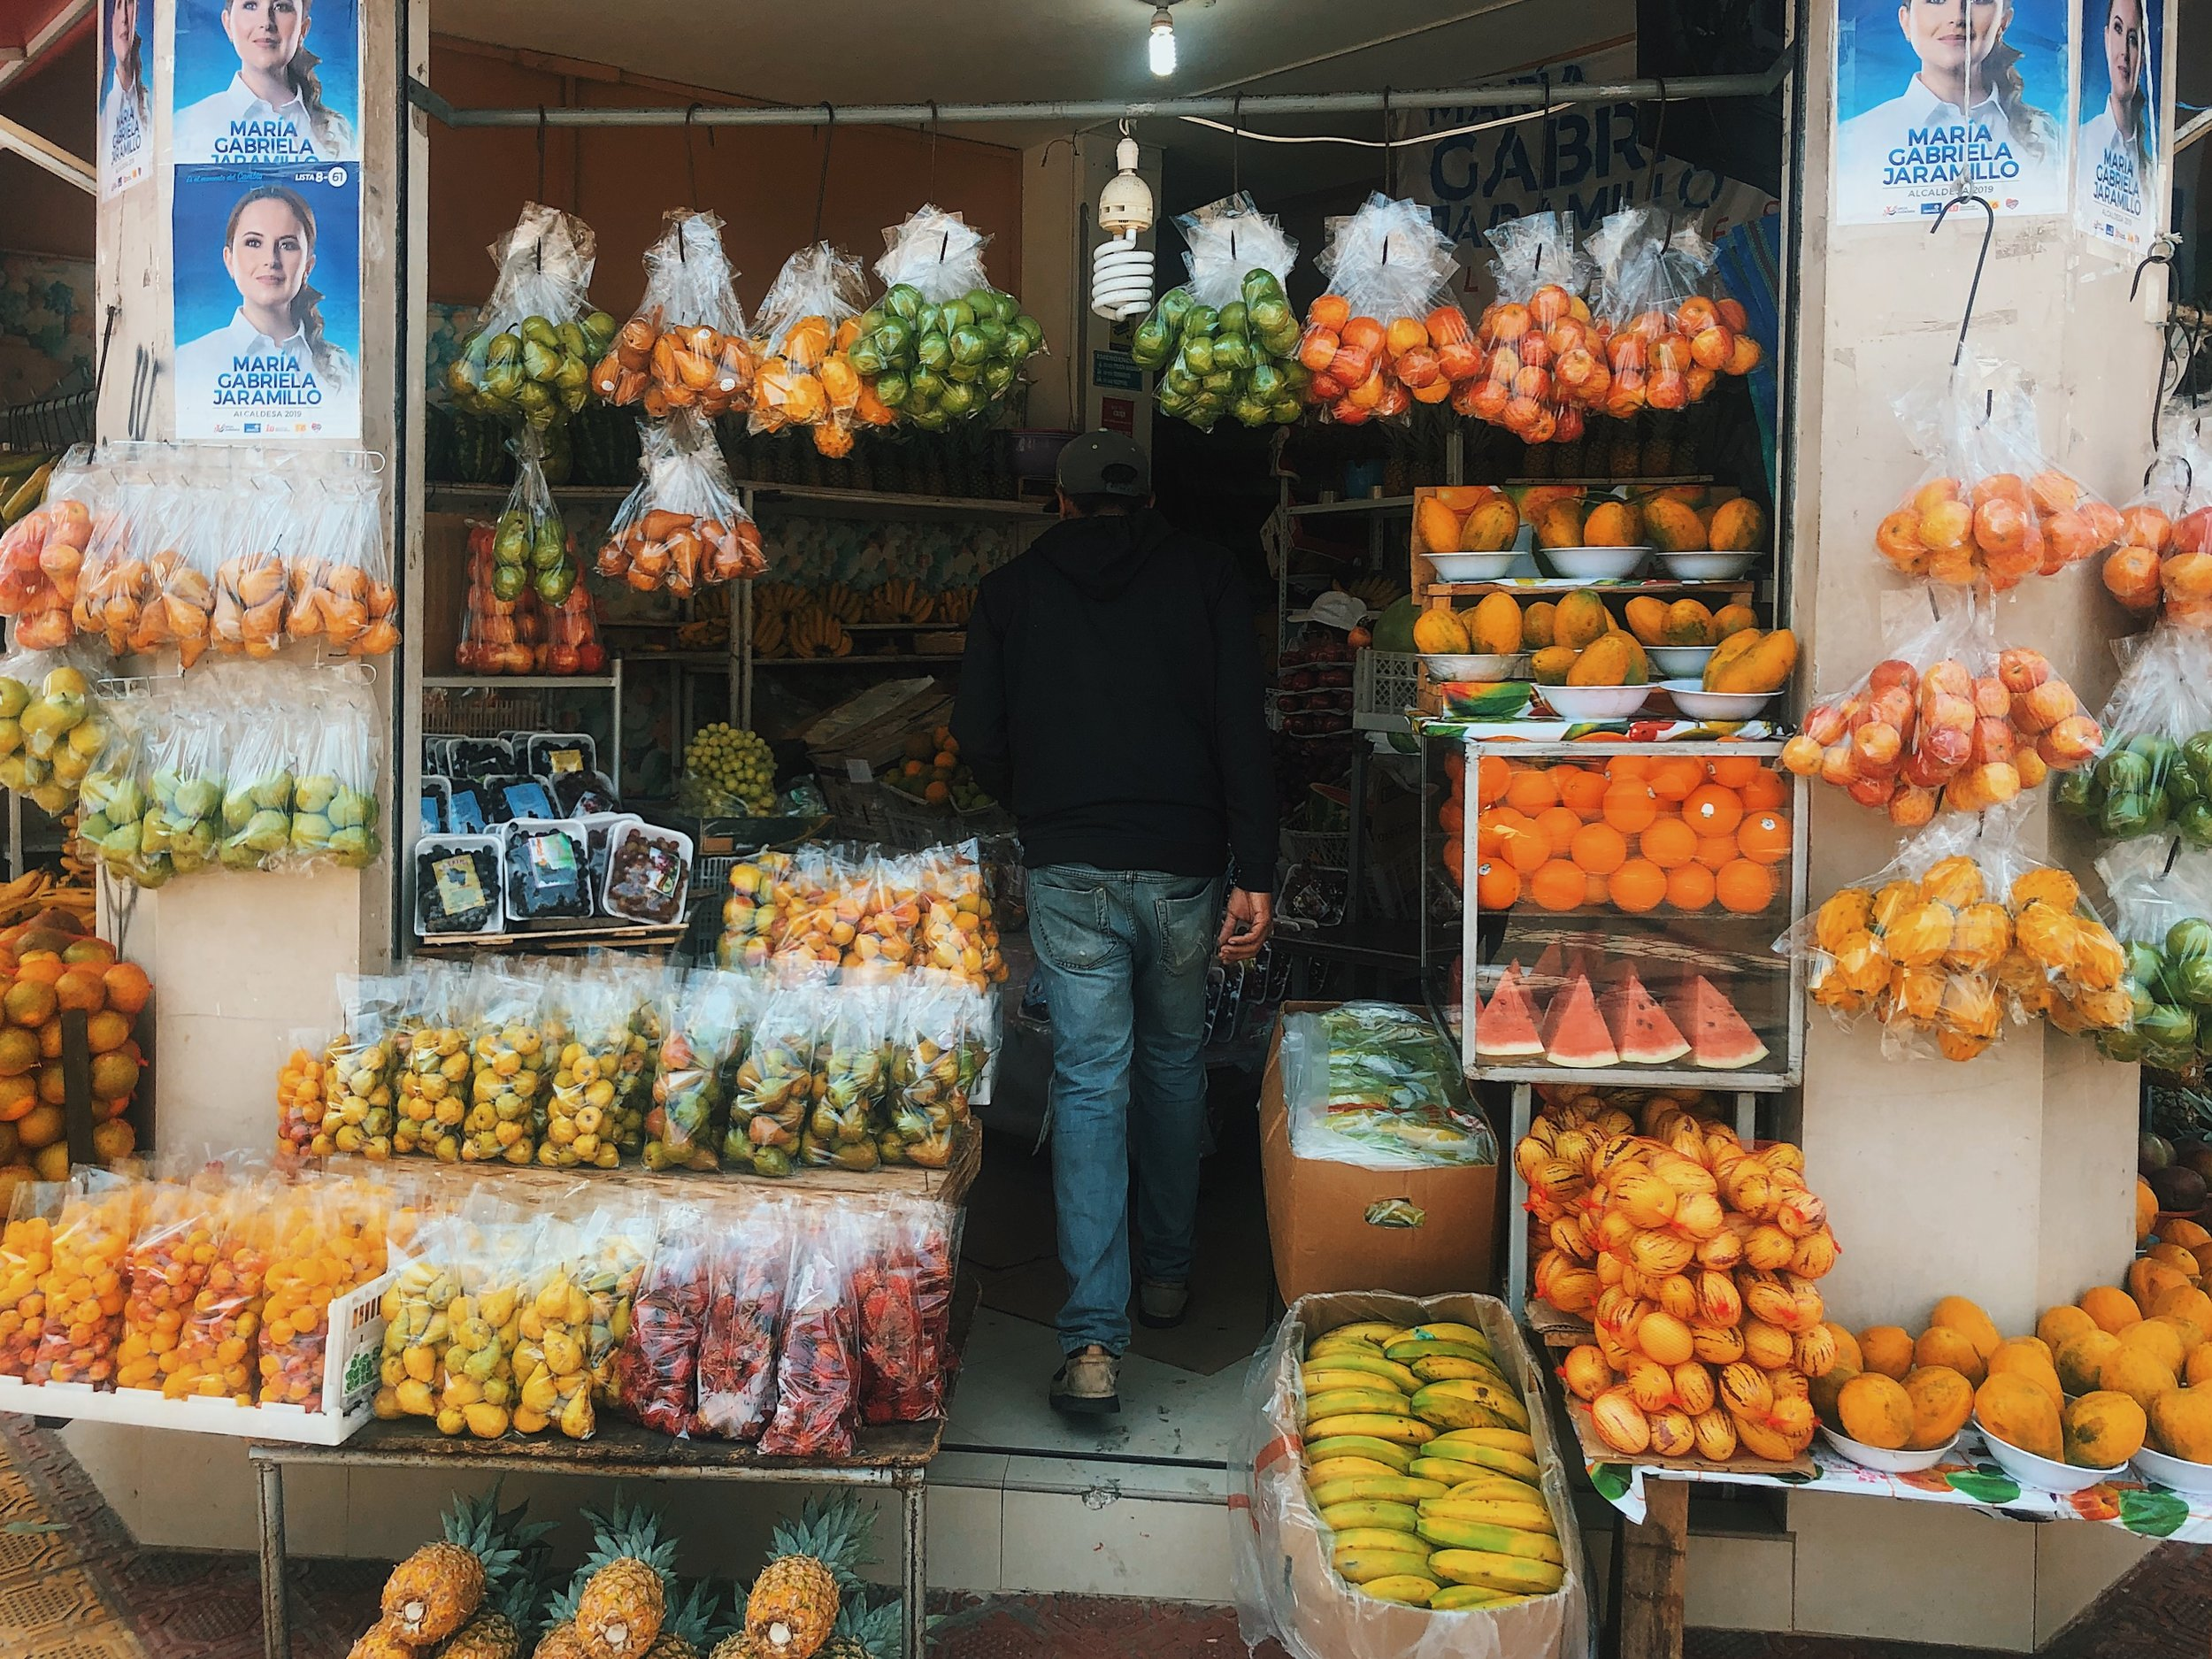 Market selling local fruits